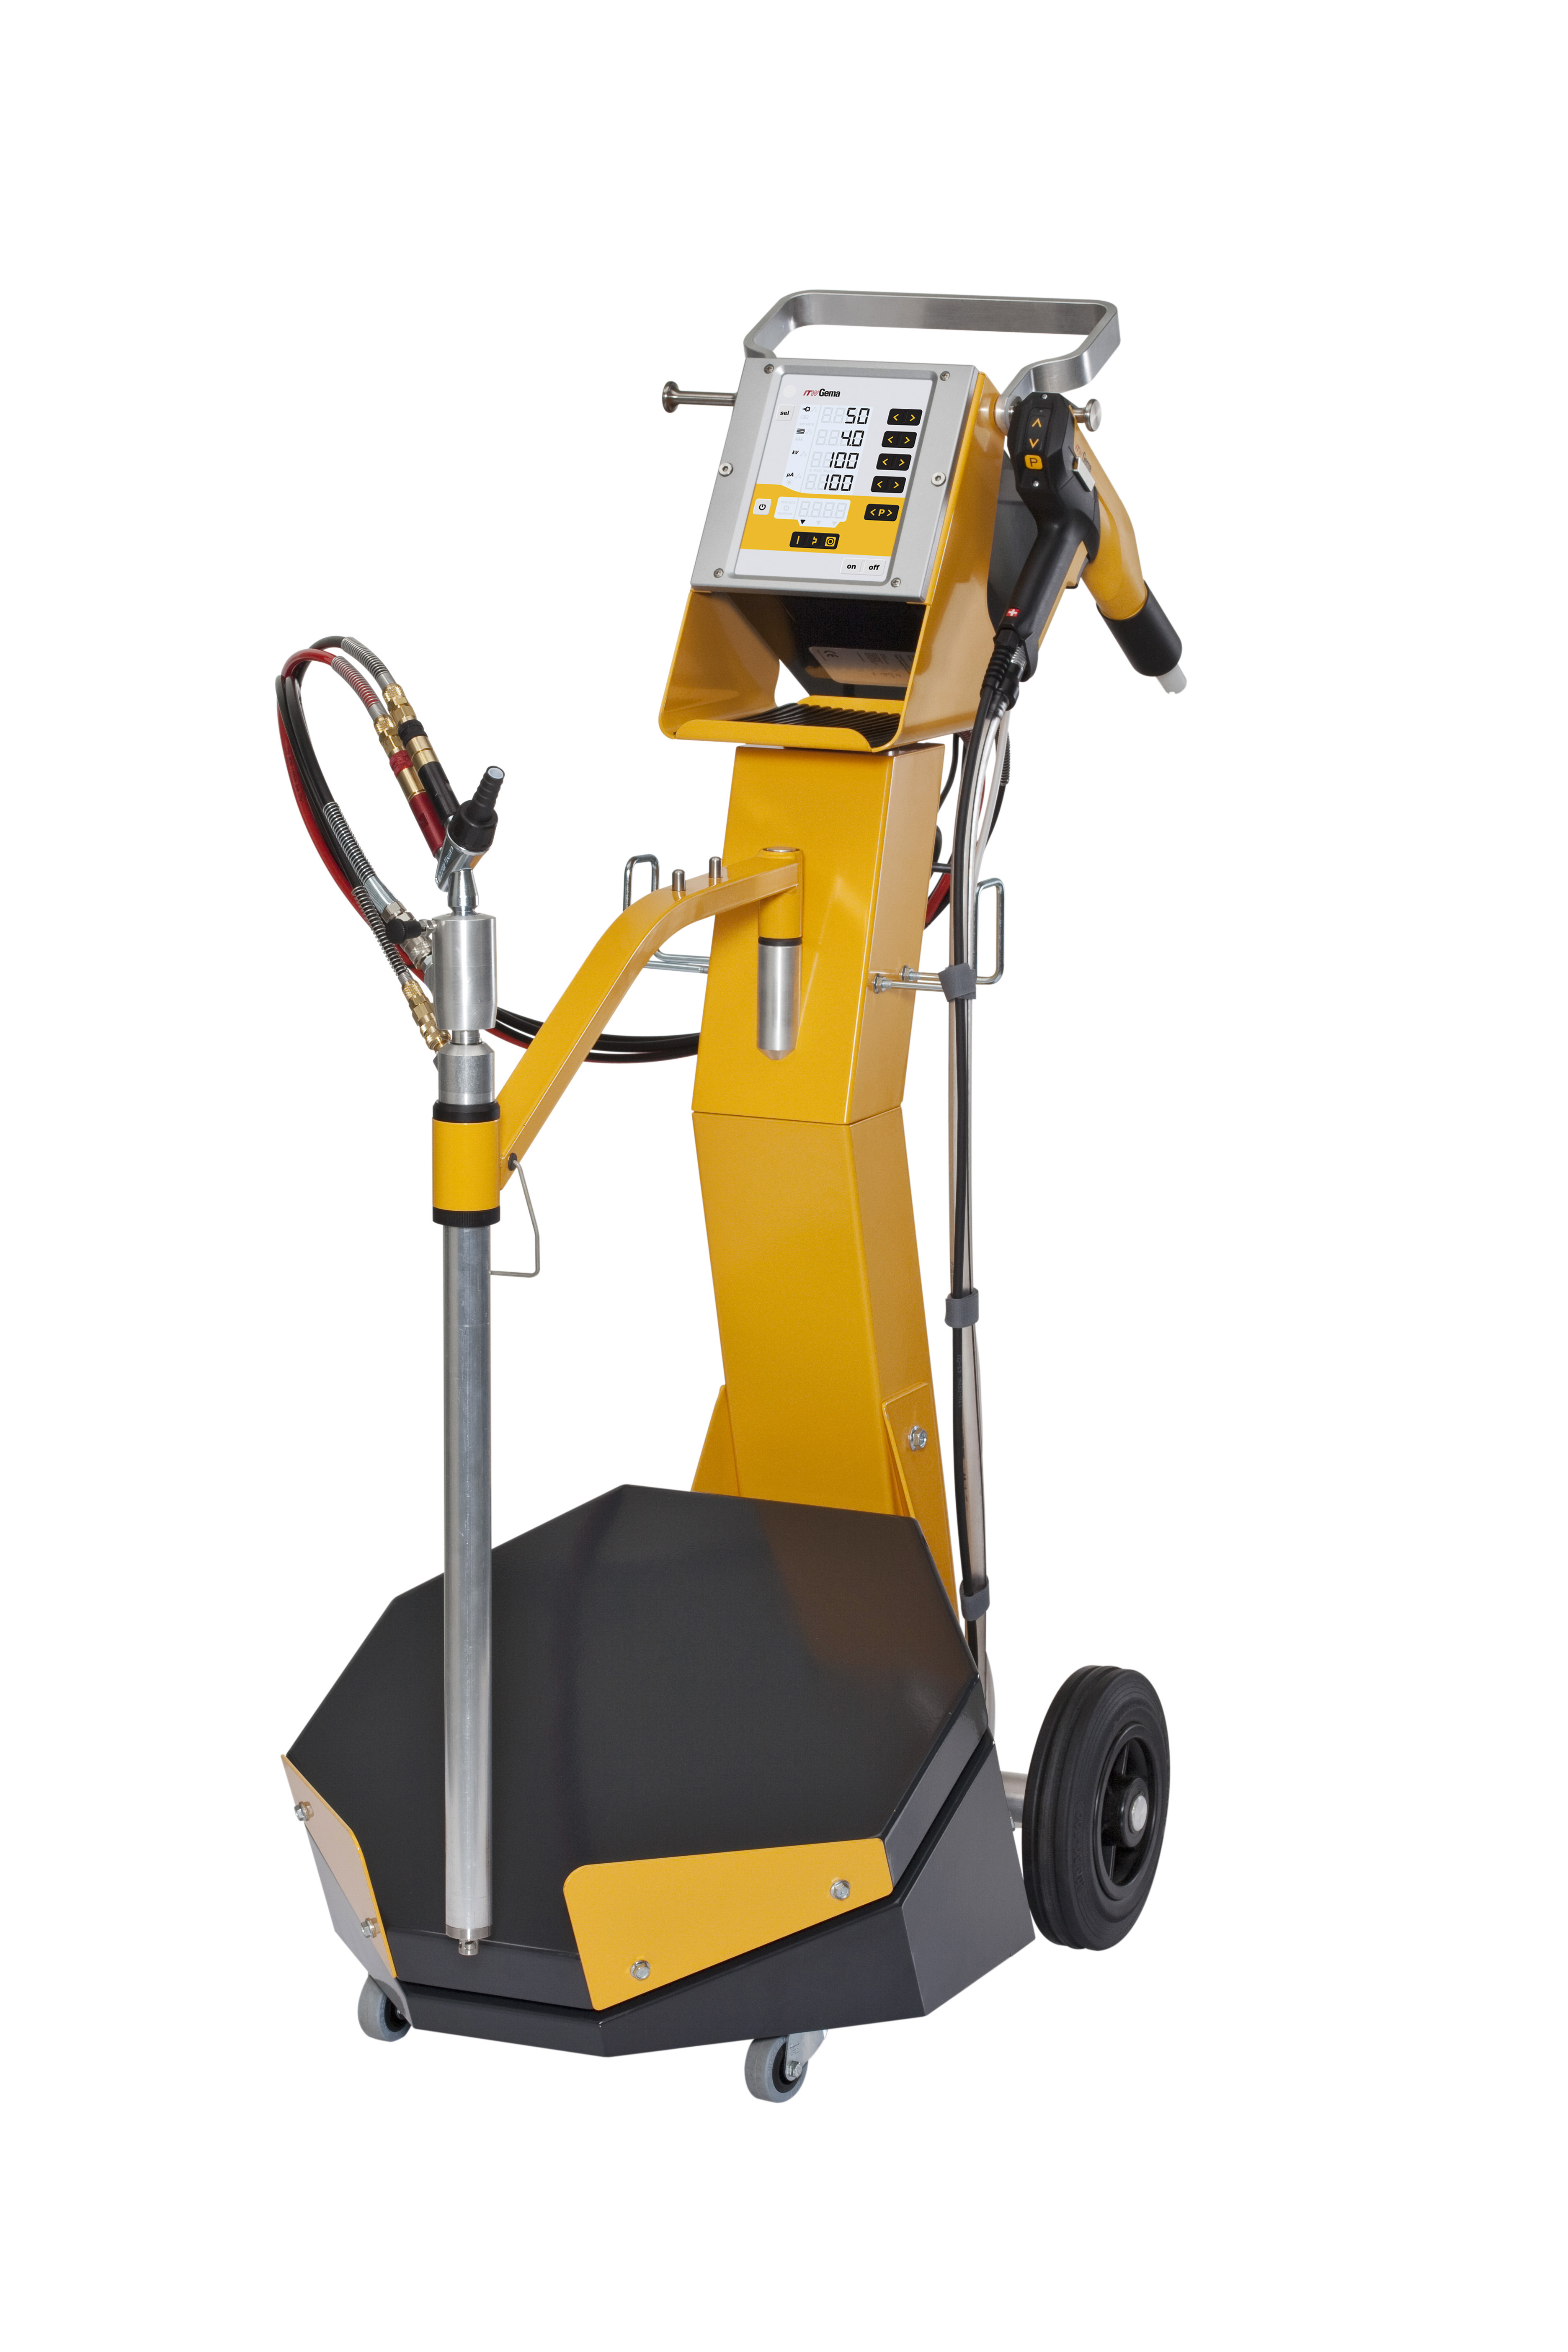 Gema Joins Graco Creating Synergistic Advantages